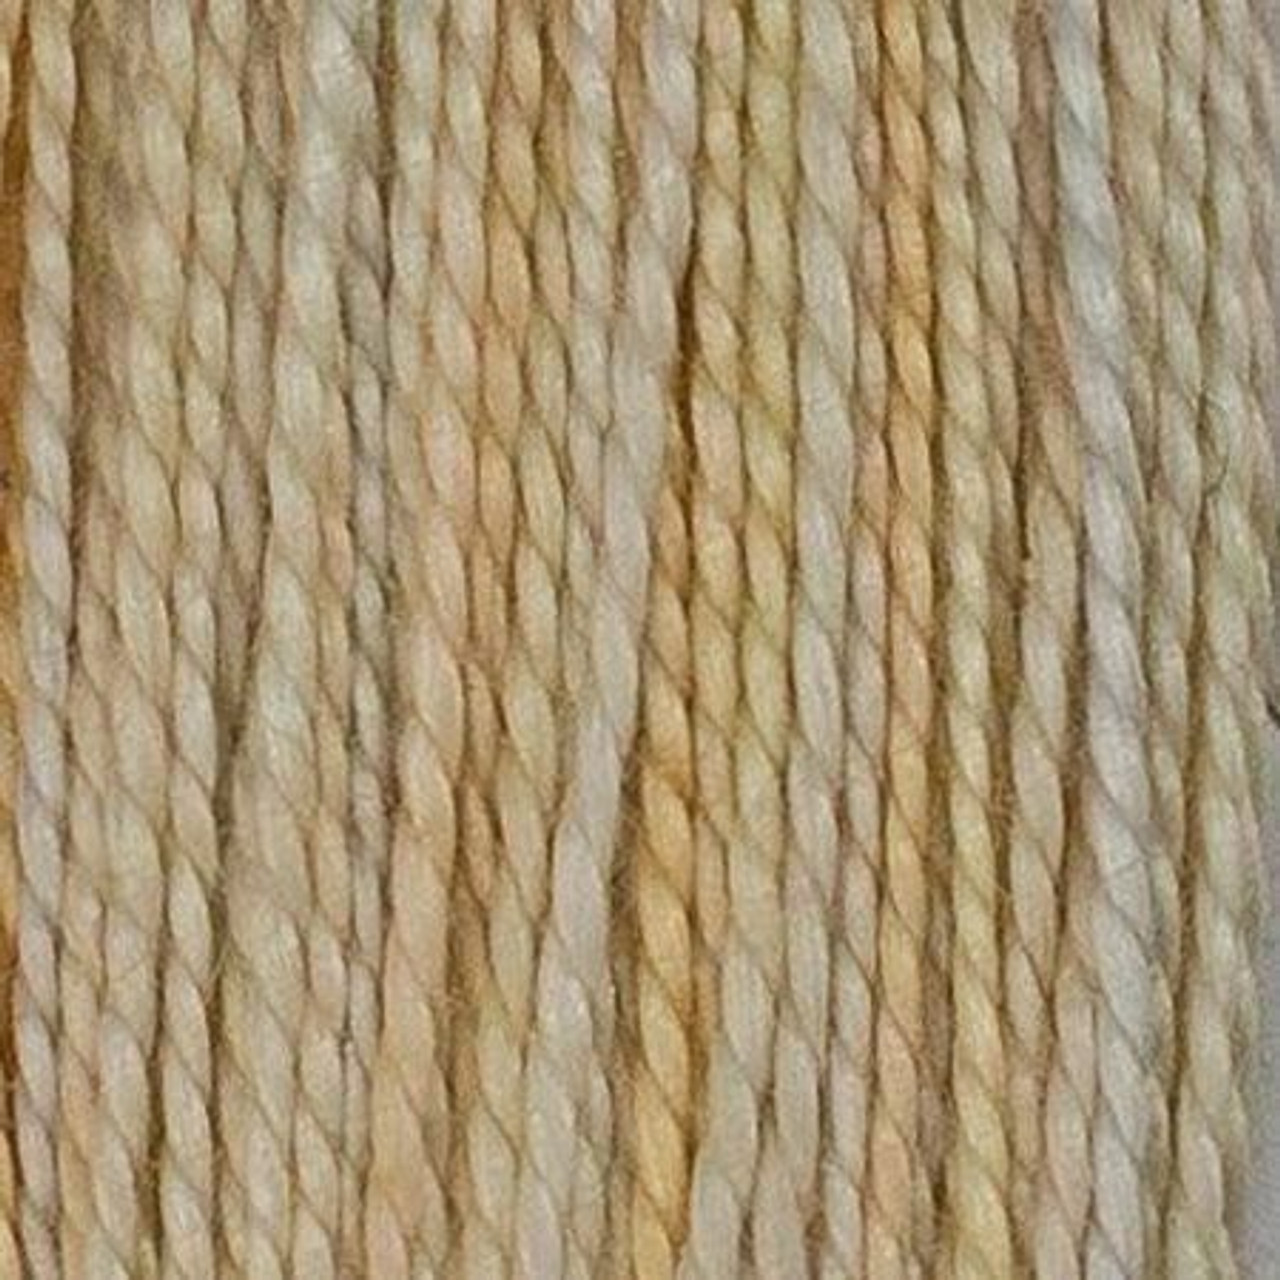 House of Embroidery : 8wt Perle Cotton - Desert Sands (42C)